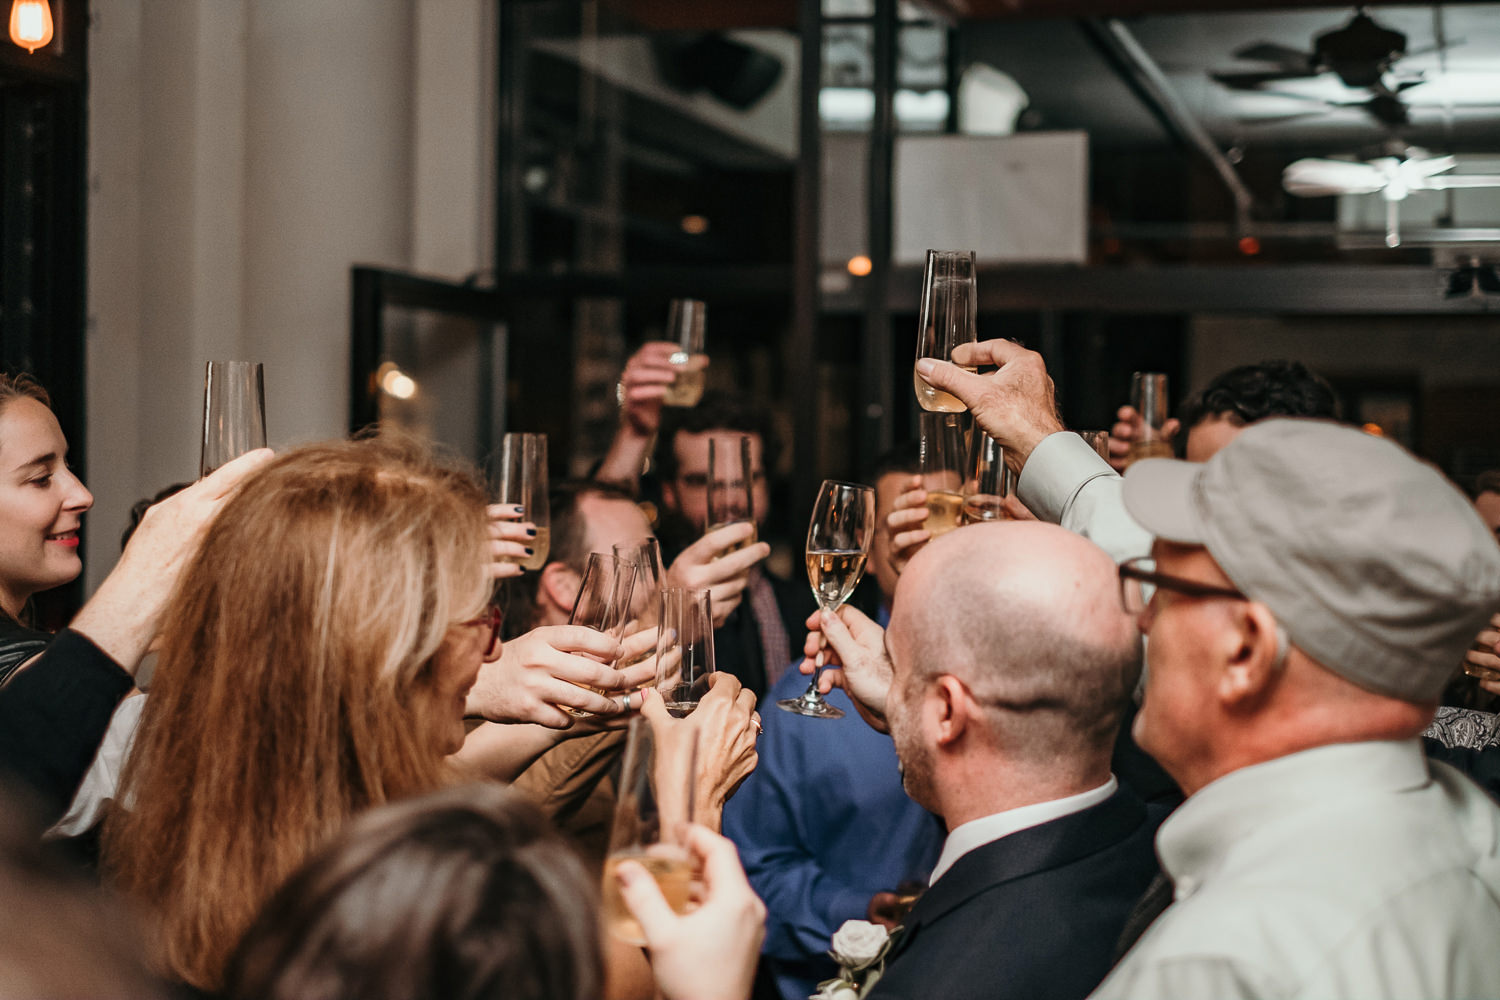 wedding guests at bar cheering with champagne